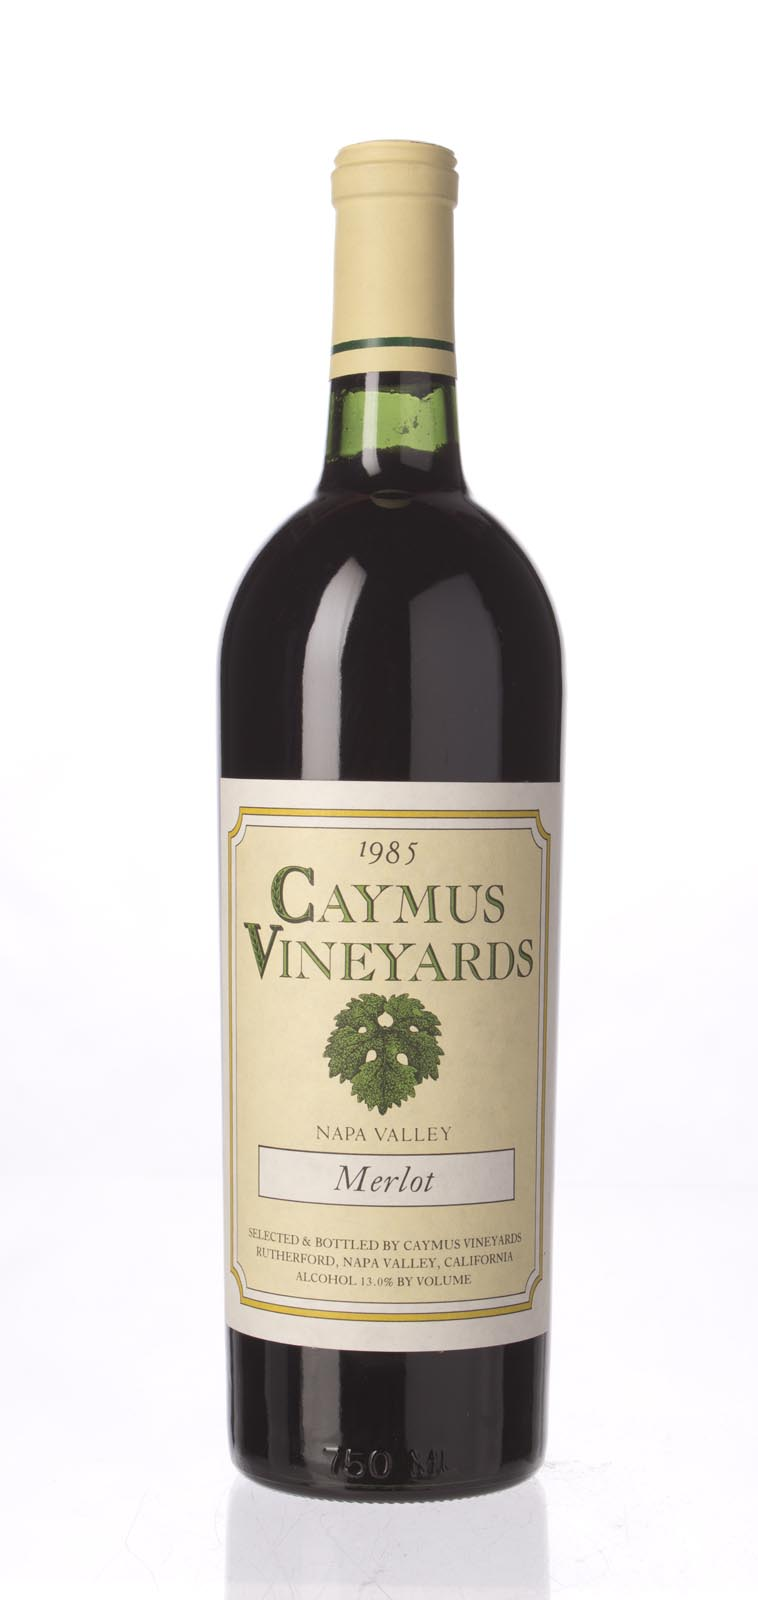 Caymus Merlot Napa Valley 1985, 750mL () from The BPW - Merchants of rare and fine wines.